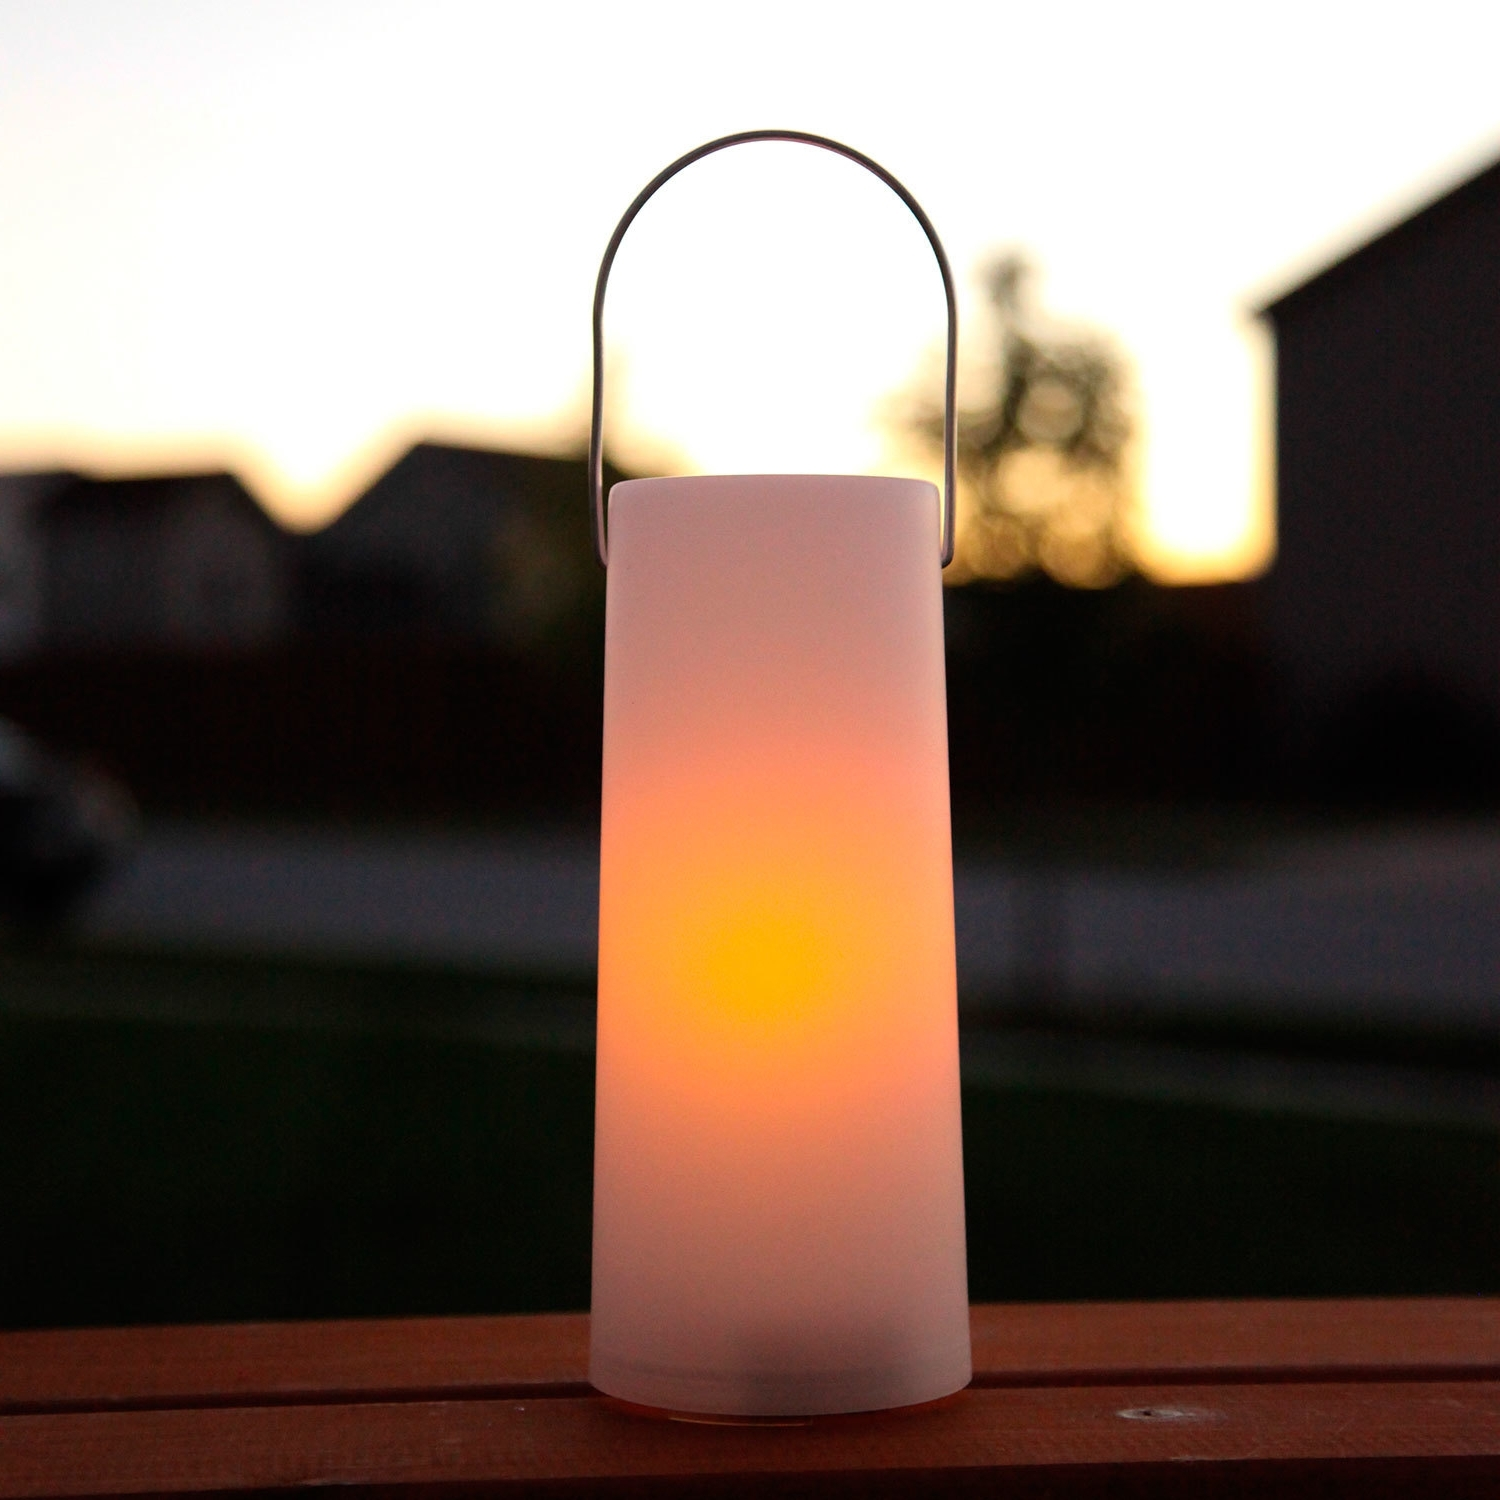 Outdoor Candle Lantern Lights Led Battery Operated Lanterns With Intended For Well Known Outdoor Lanterns With Battery Candles (View 2 of 20)